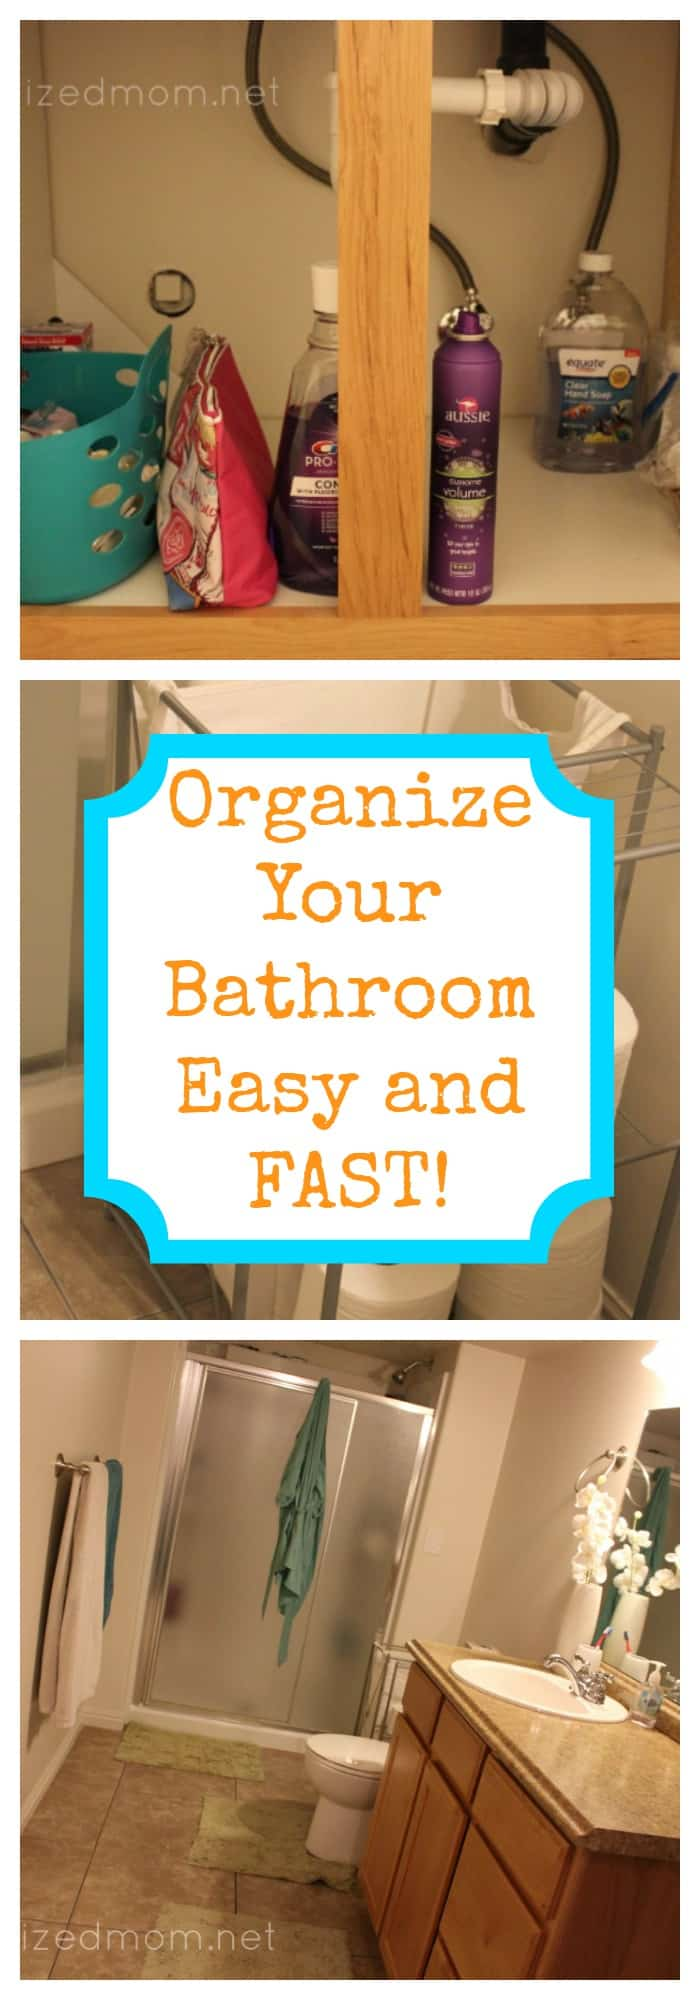 Home Organization--Organize Your Bathroom Easy and Fast--The Organized Mom